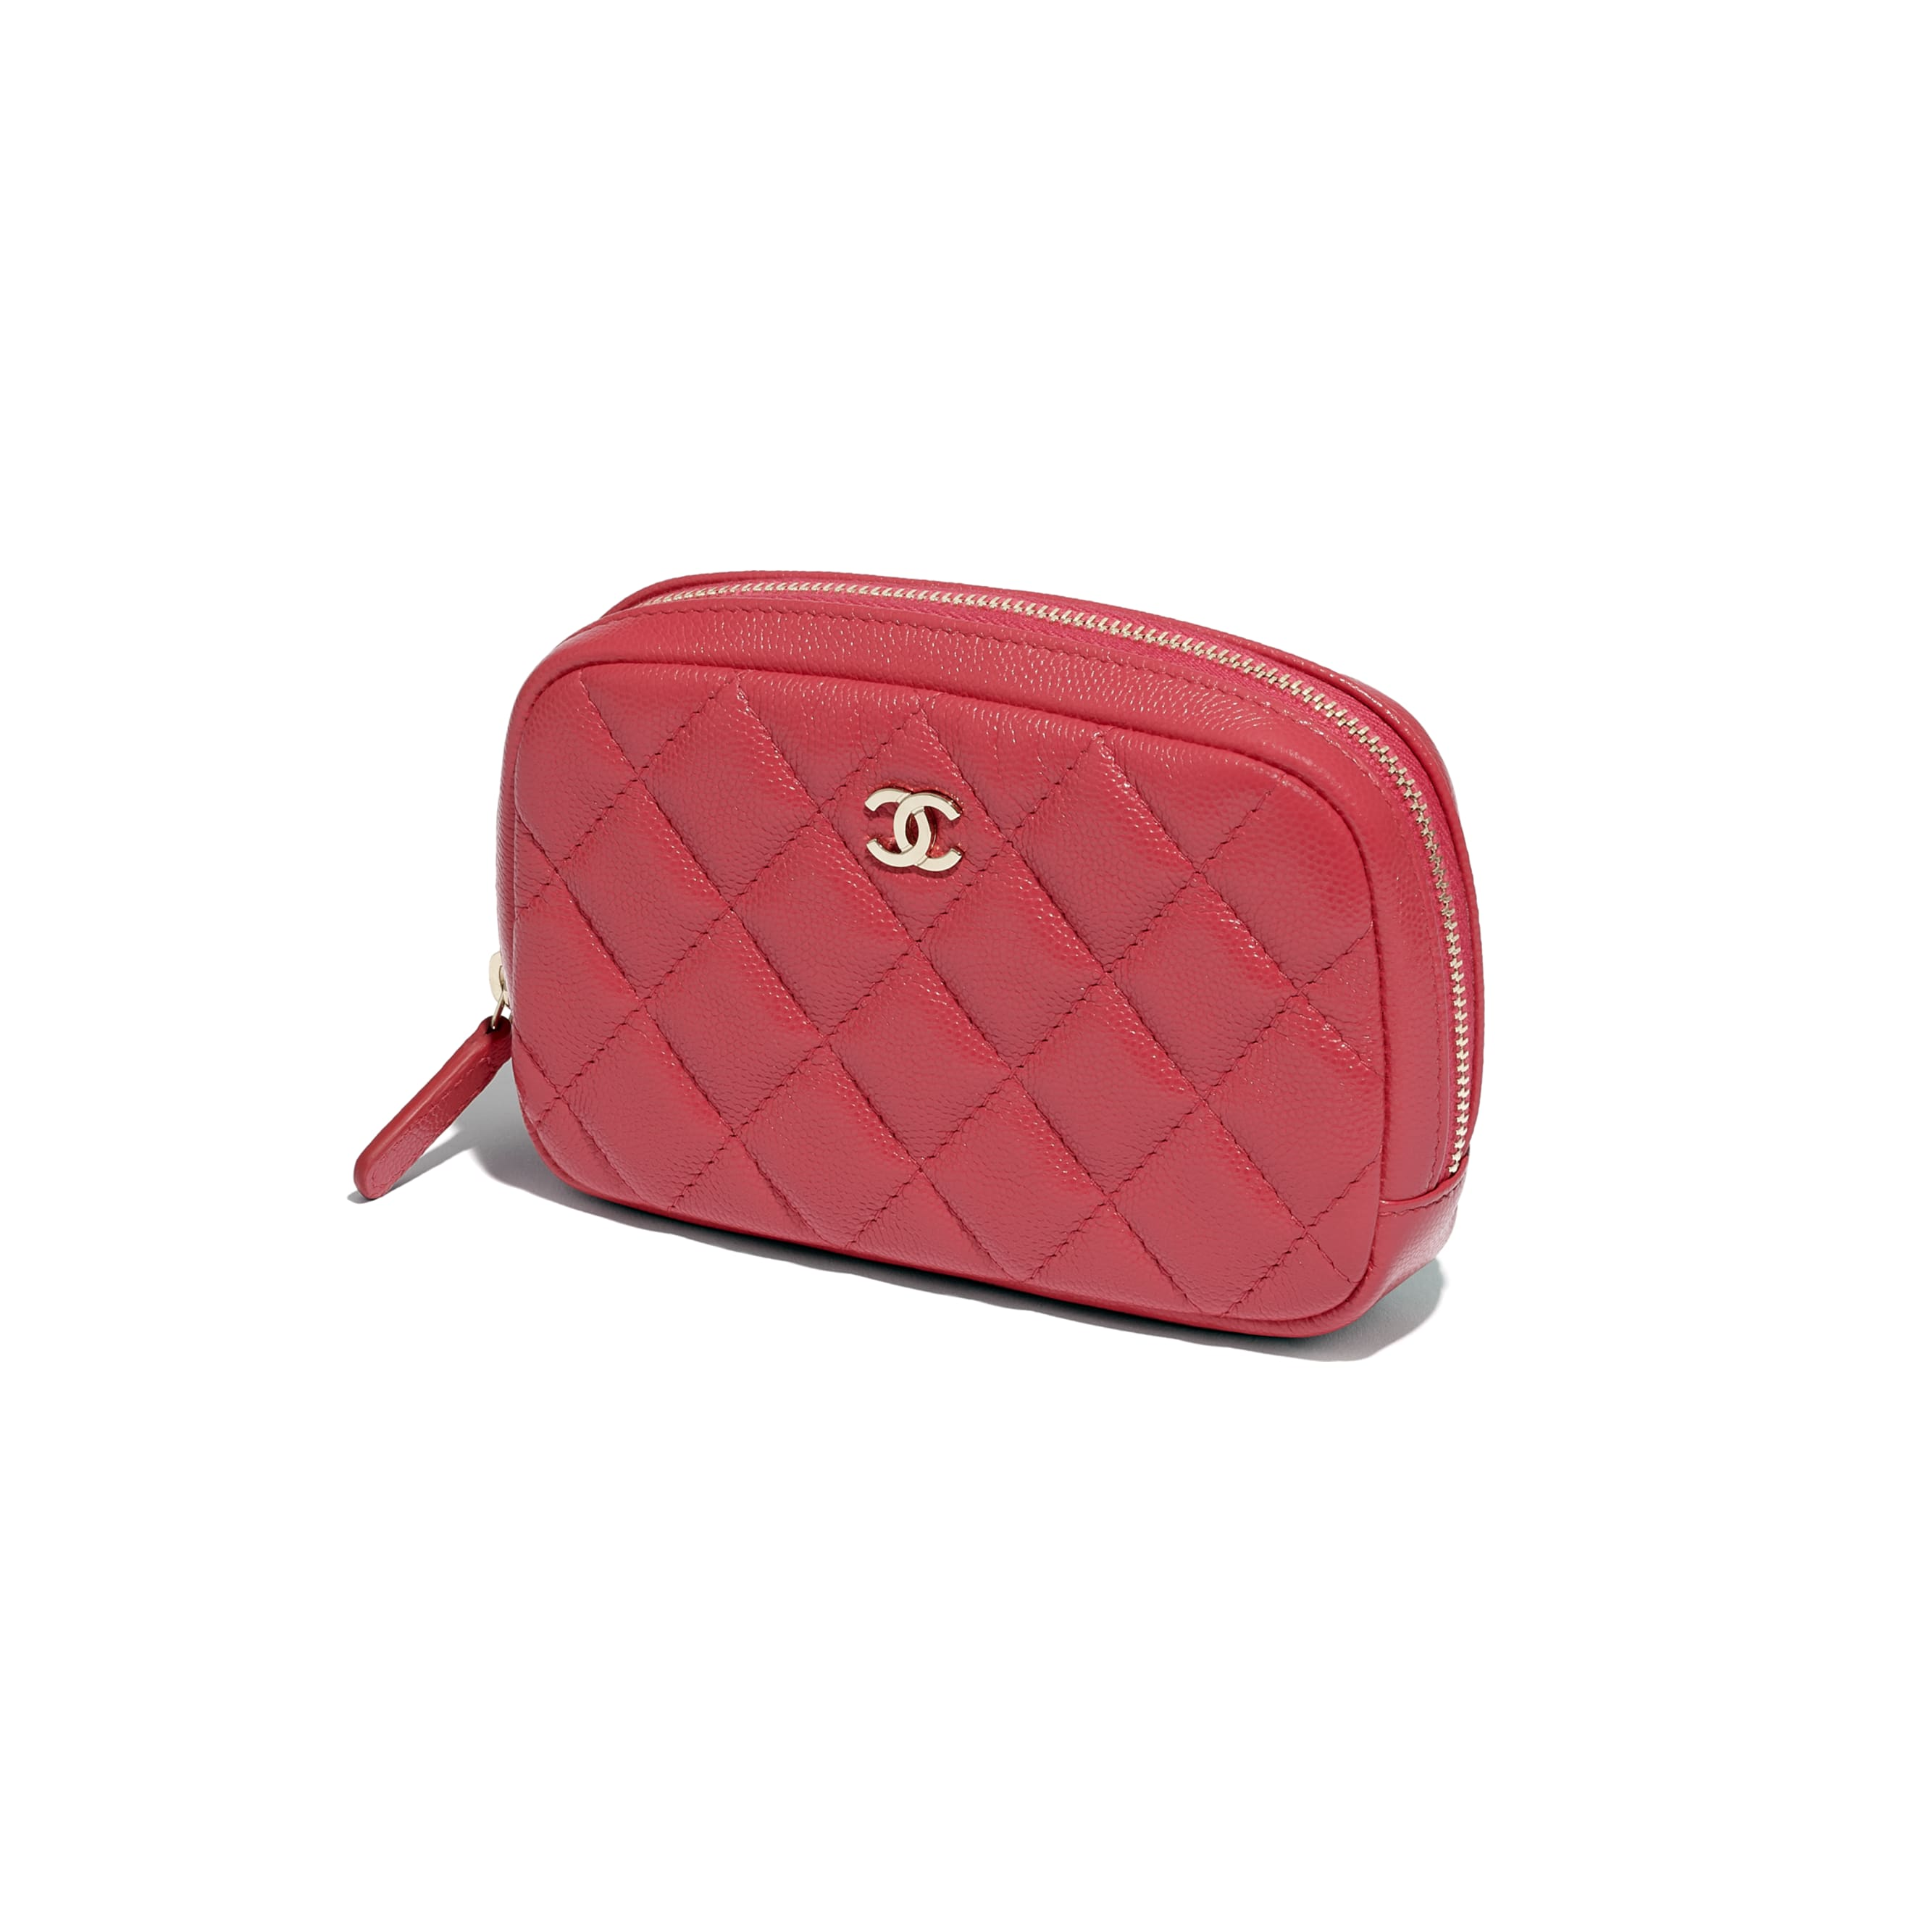 Classic Case - Red - Grained Shiny Calfskin & Gold-Tone Metal - CHANEL - Extra view - see standard sized version